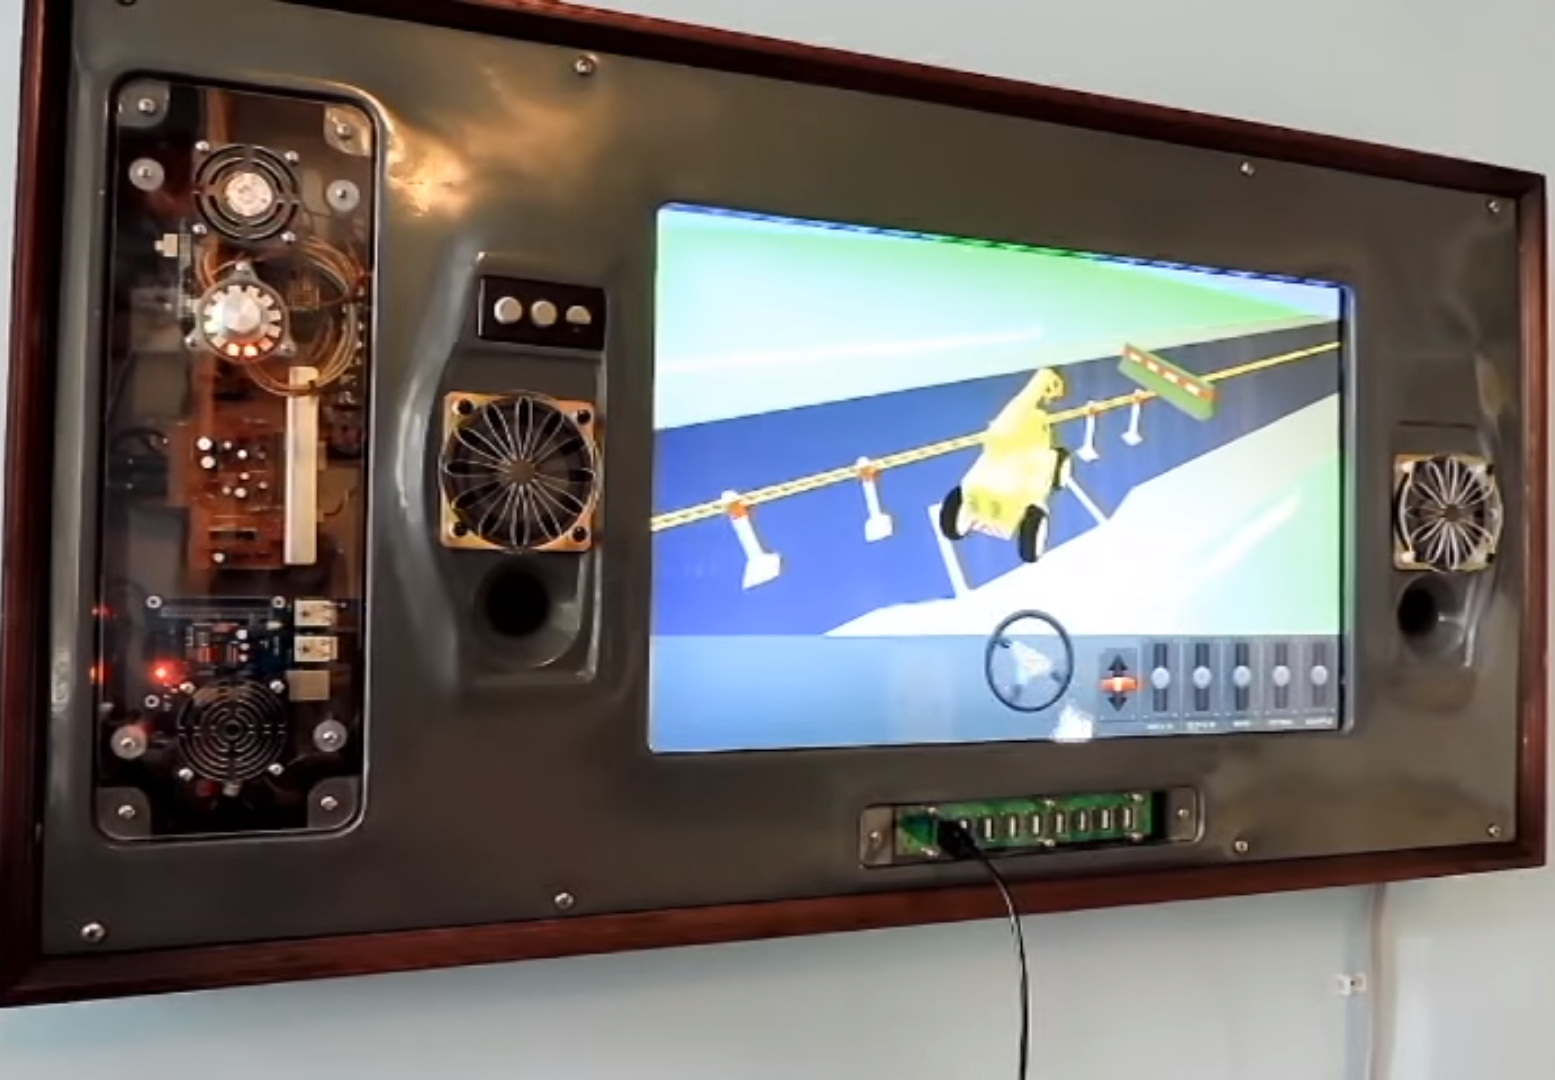 Wall-mounted Raspberry Pi games console for kids